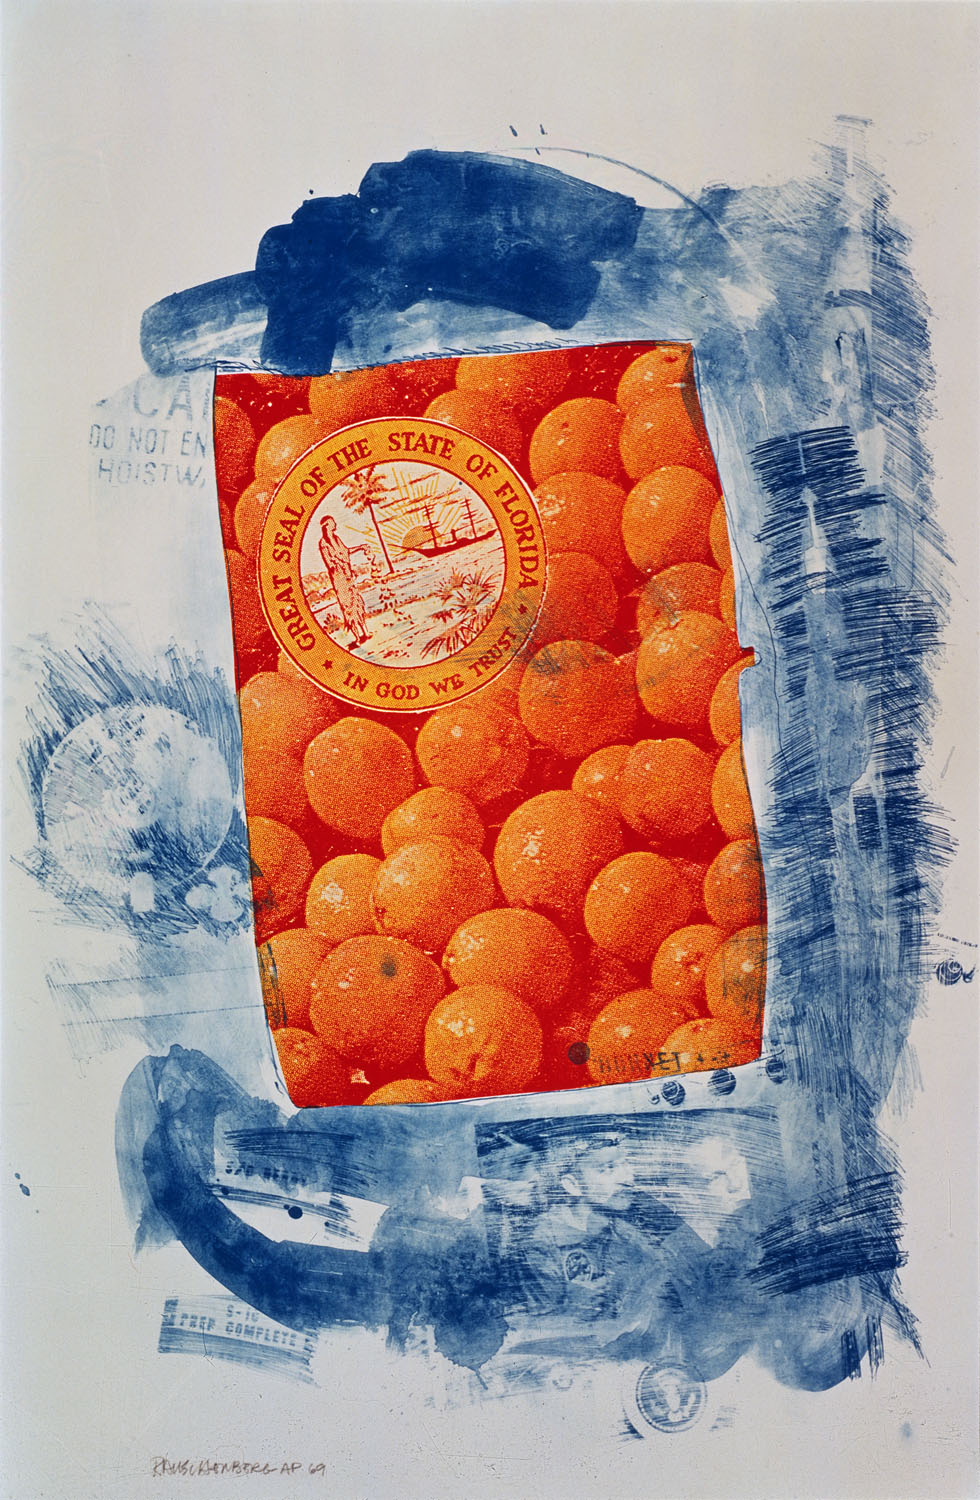 <p><em>Banner (Stoned Moon)</em>, 1969.  Lithograph, 54 ½ x 36 inches.  © Robert Rauschenberg Foundation and Gemini G.E.L.</p>